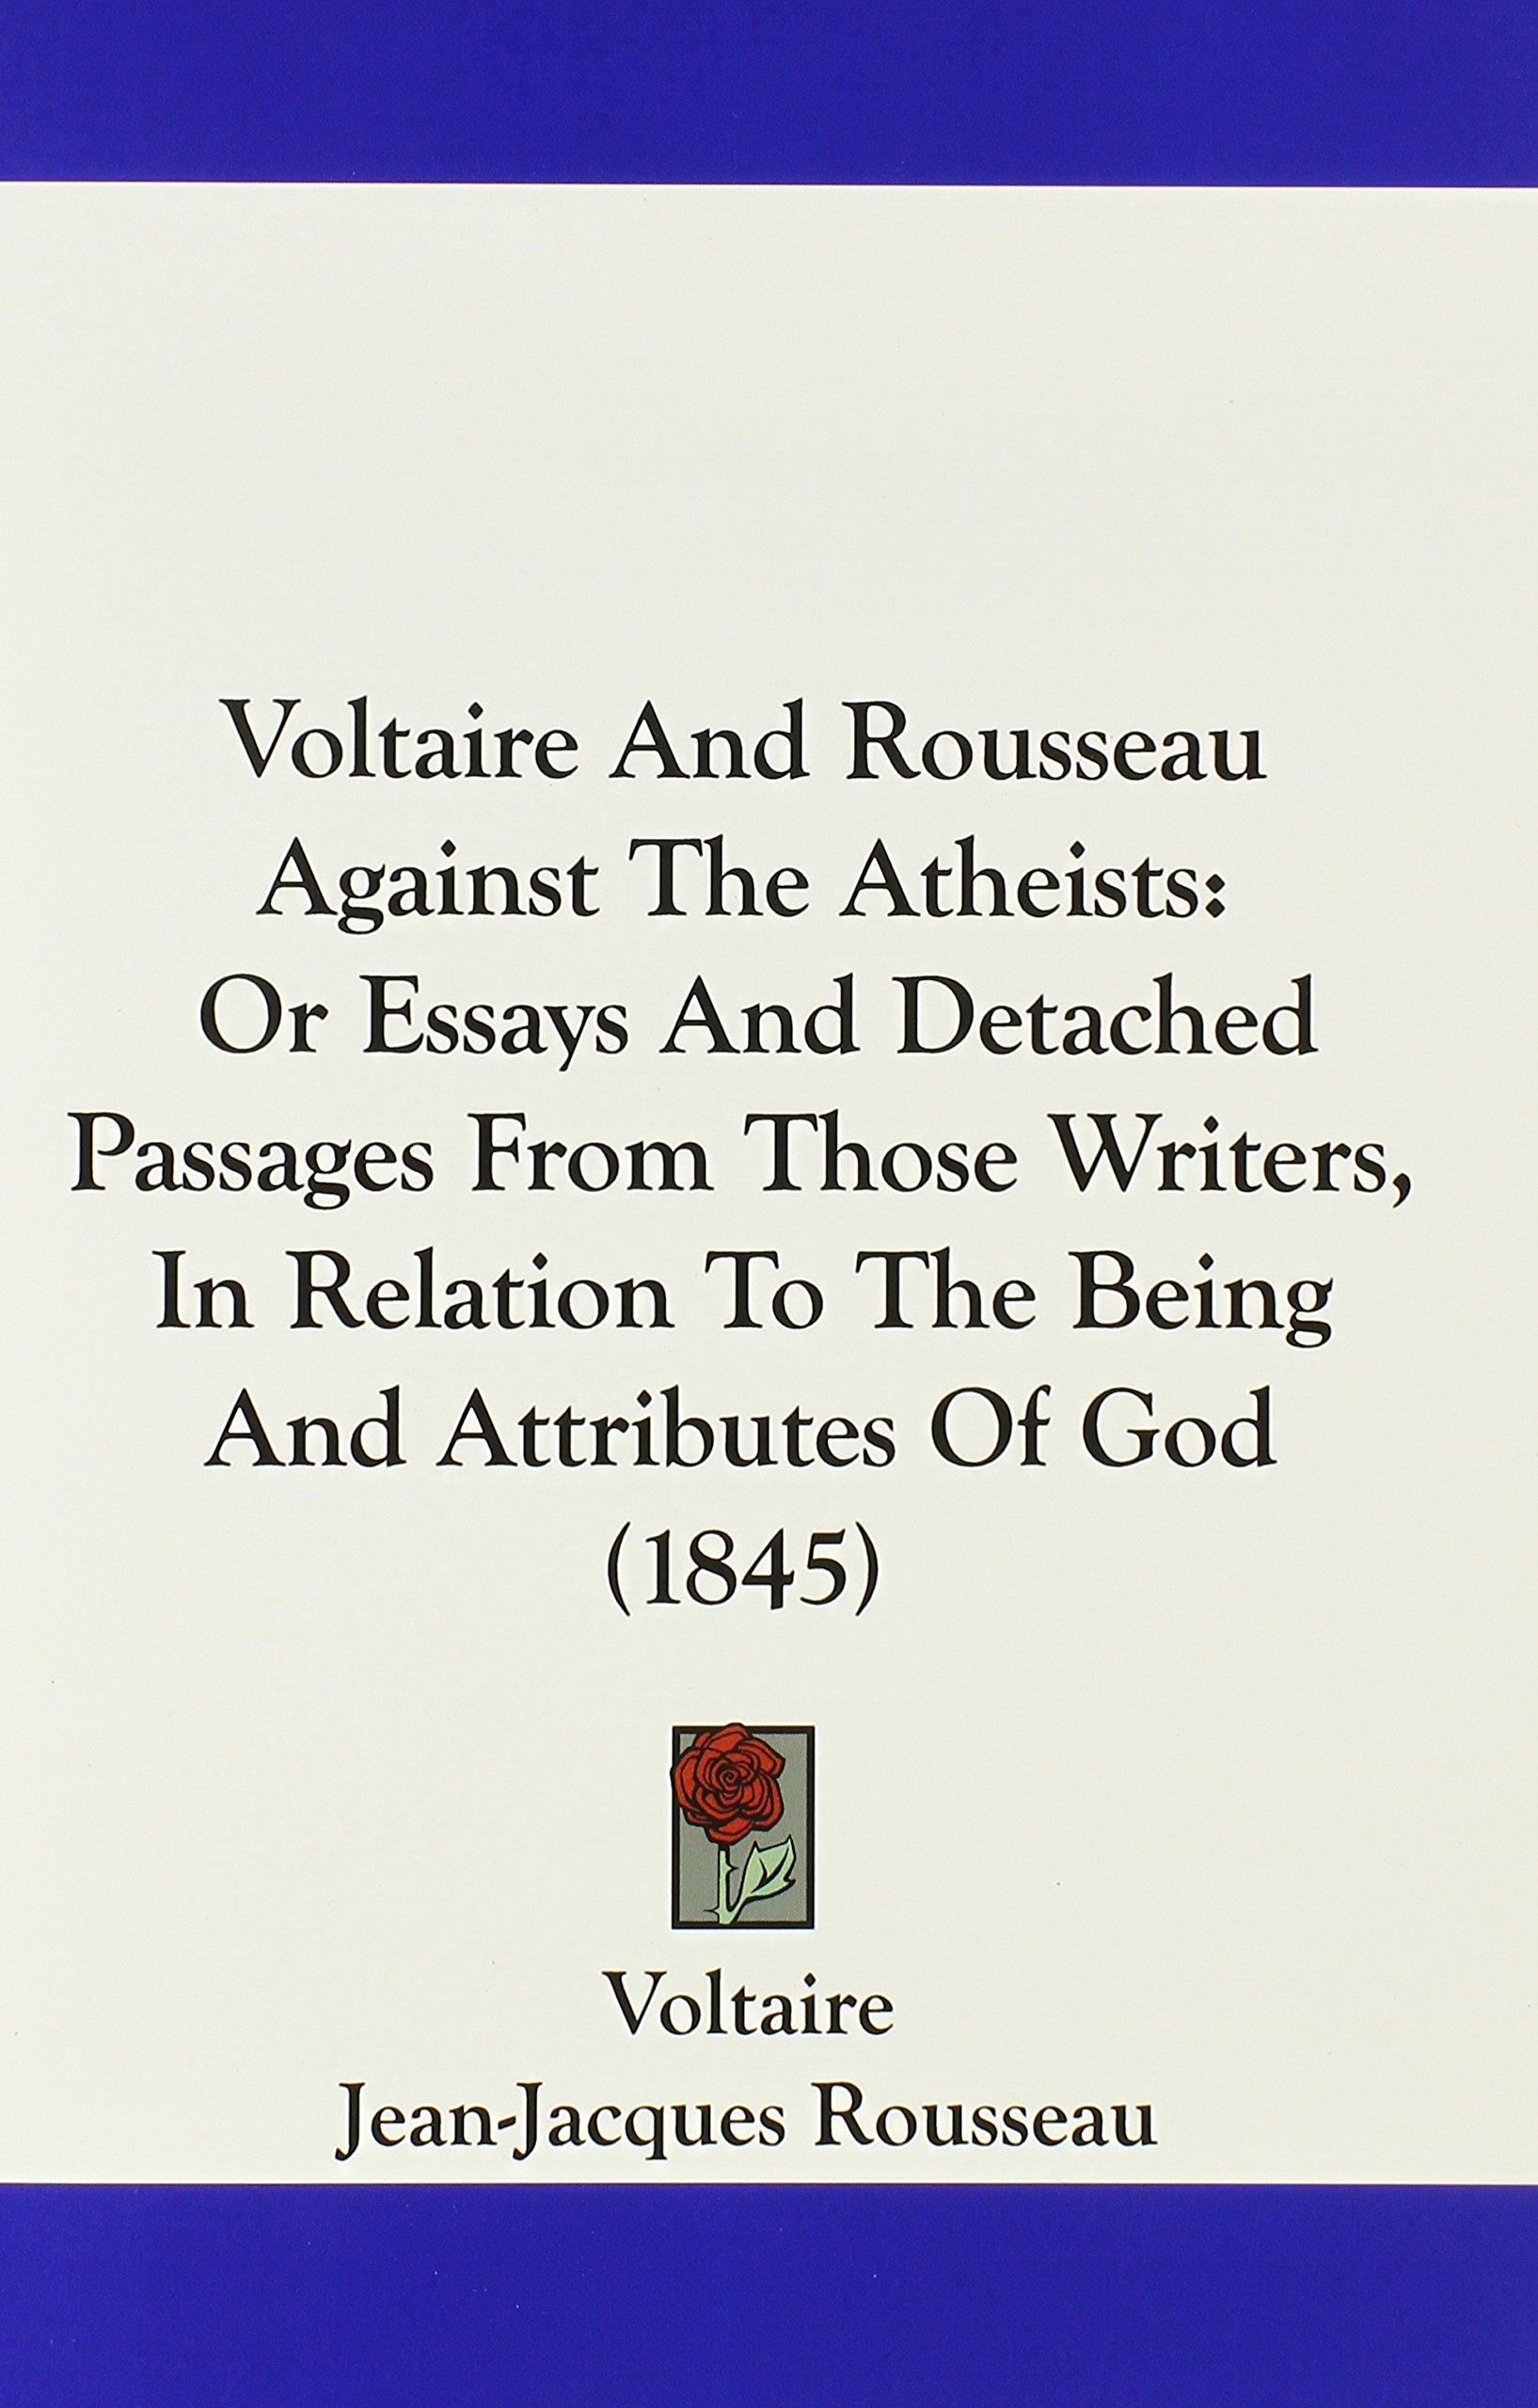 English Class Reflection Essay Voltaire And Rousseau Against The Atheists Or Essays And Detached Passages  From Those Writers In Relation To The Being And Attributes Of God    High School Personal Statement Sample Essays also How To Write A Synthesis Essay Voltaire And Rousseau Against The Atheists Or Essays And Detached  College Vs High School Essay Compare And Contrast